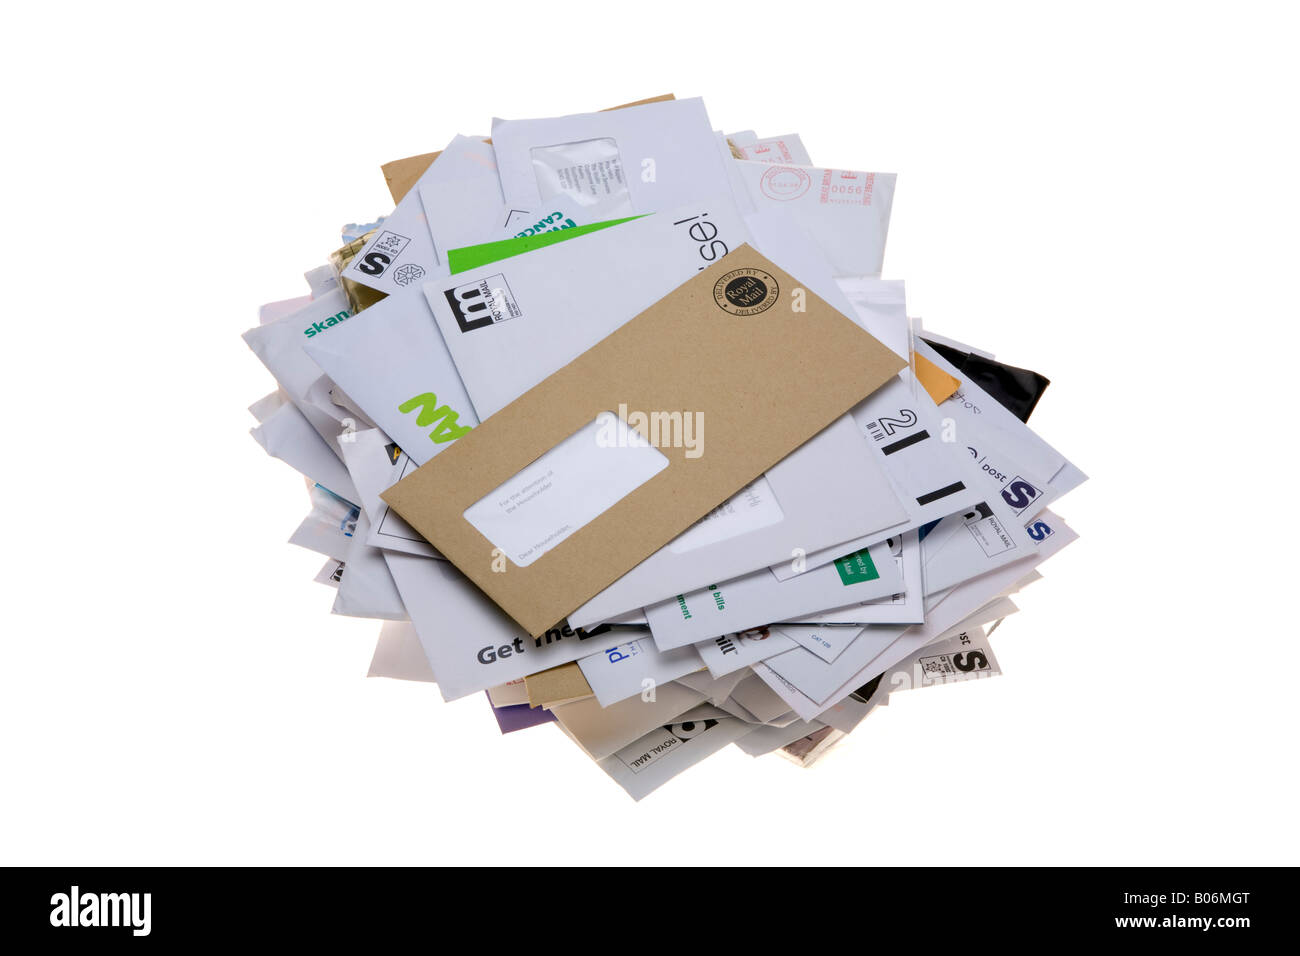 post tray full of junk mail junkmail Stock Photo